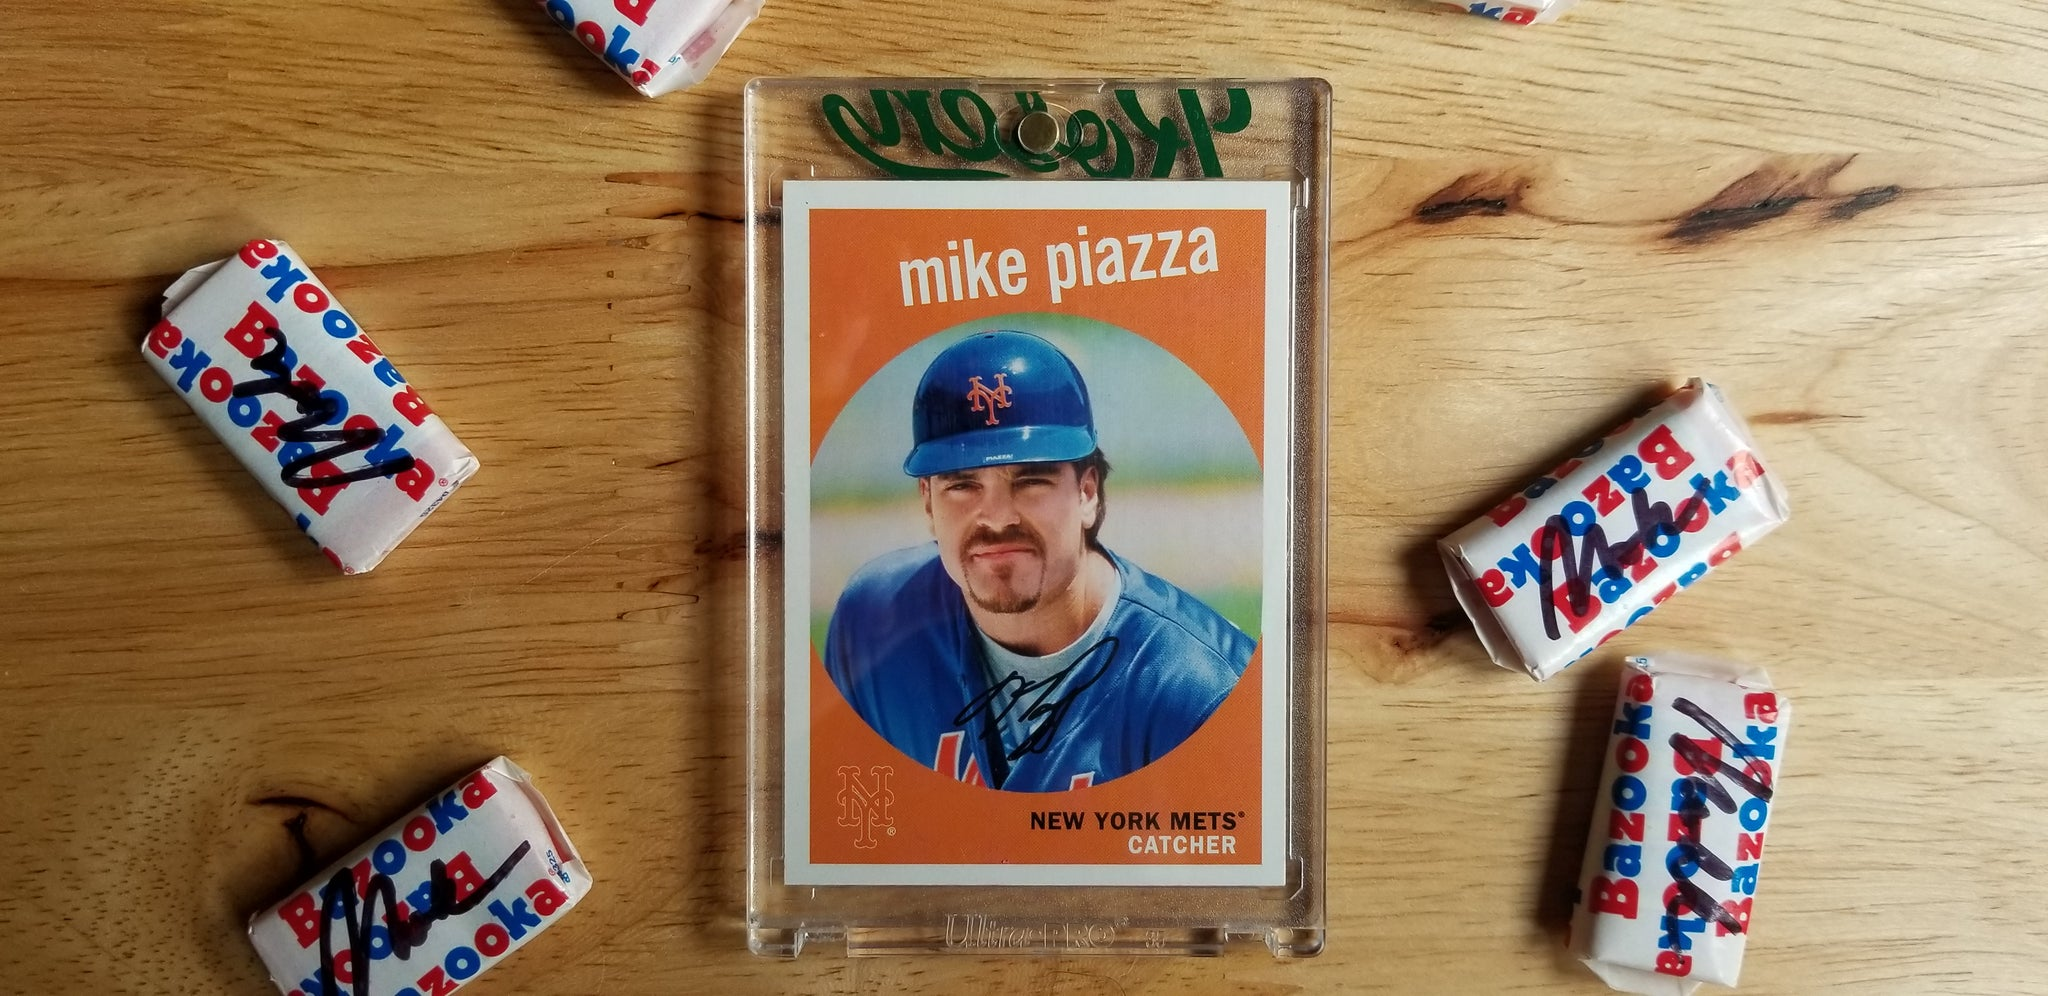 Baseball card art by Matthew Lee Rosen (aka Matthew Rosen) - Mike Piazza